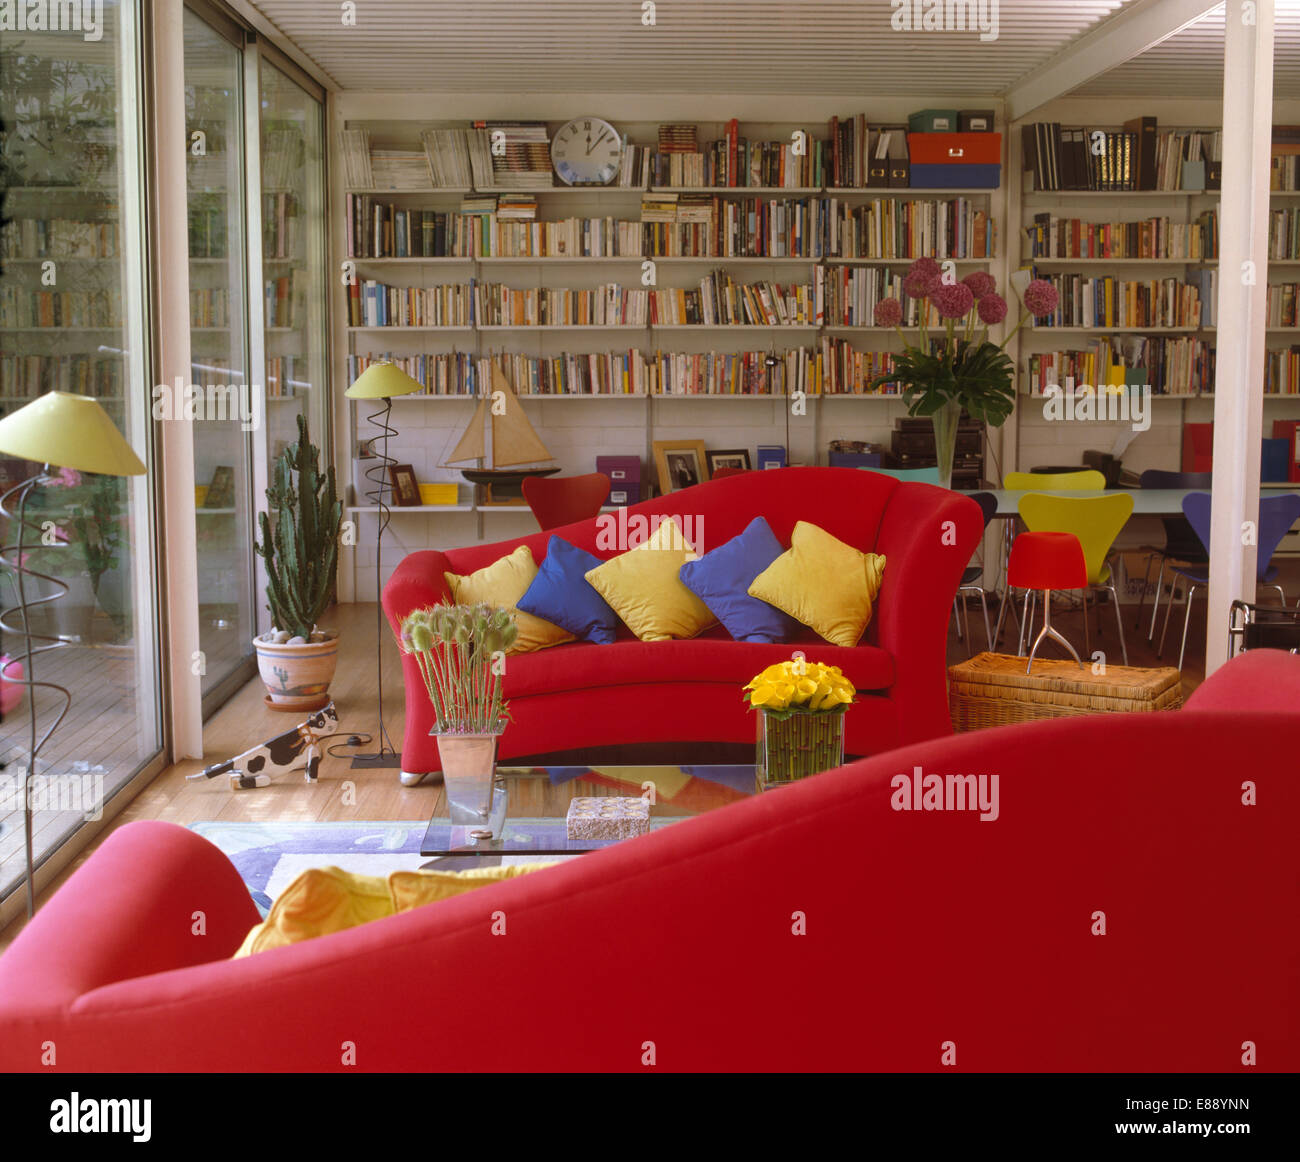 Yellow And Blue Cushions On Bright Red Sofas In Modern City Living Room With Bookshelves Covering The Back Wall